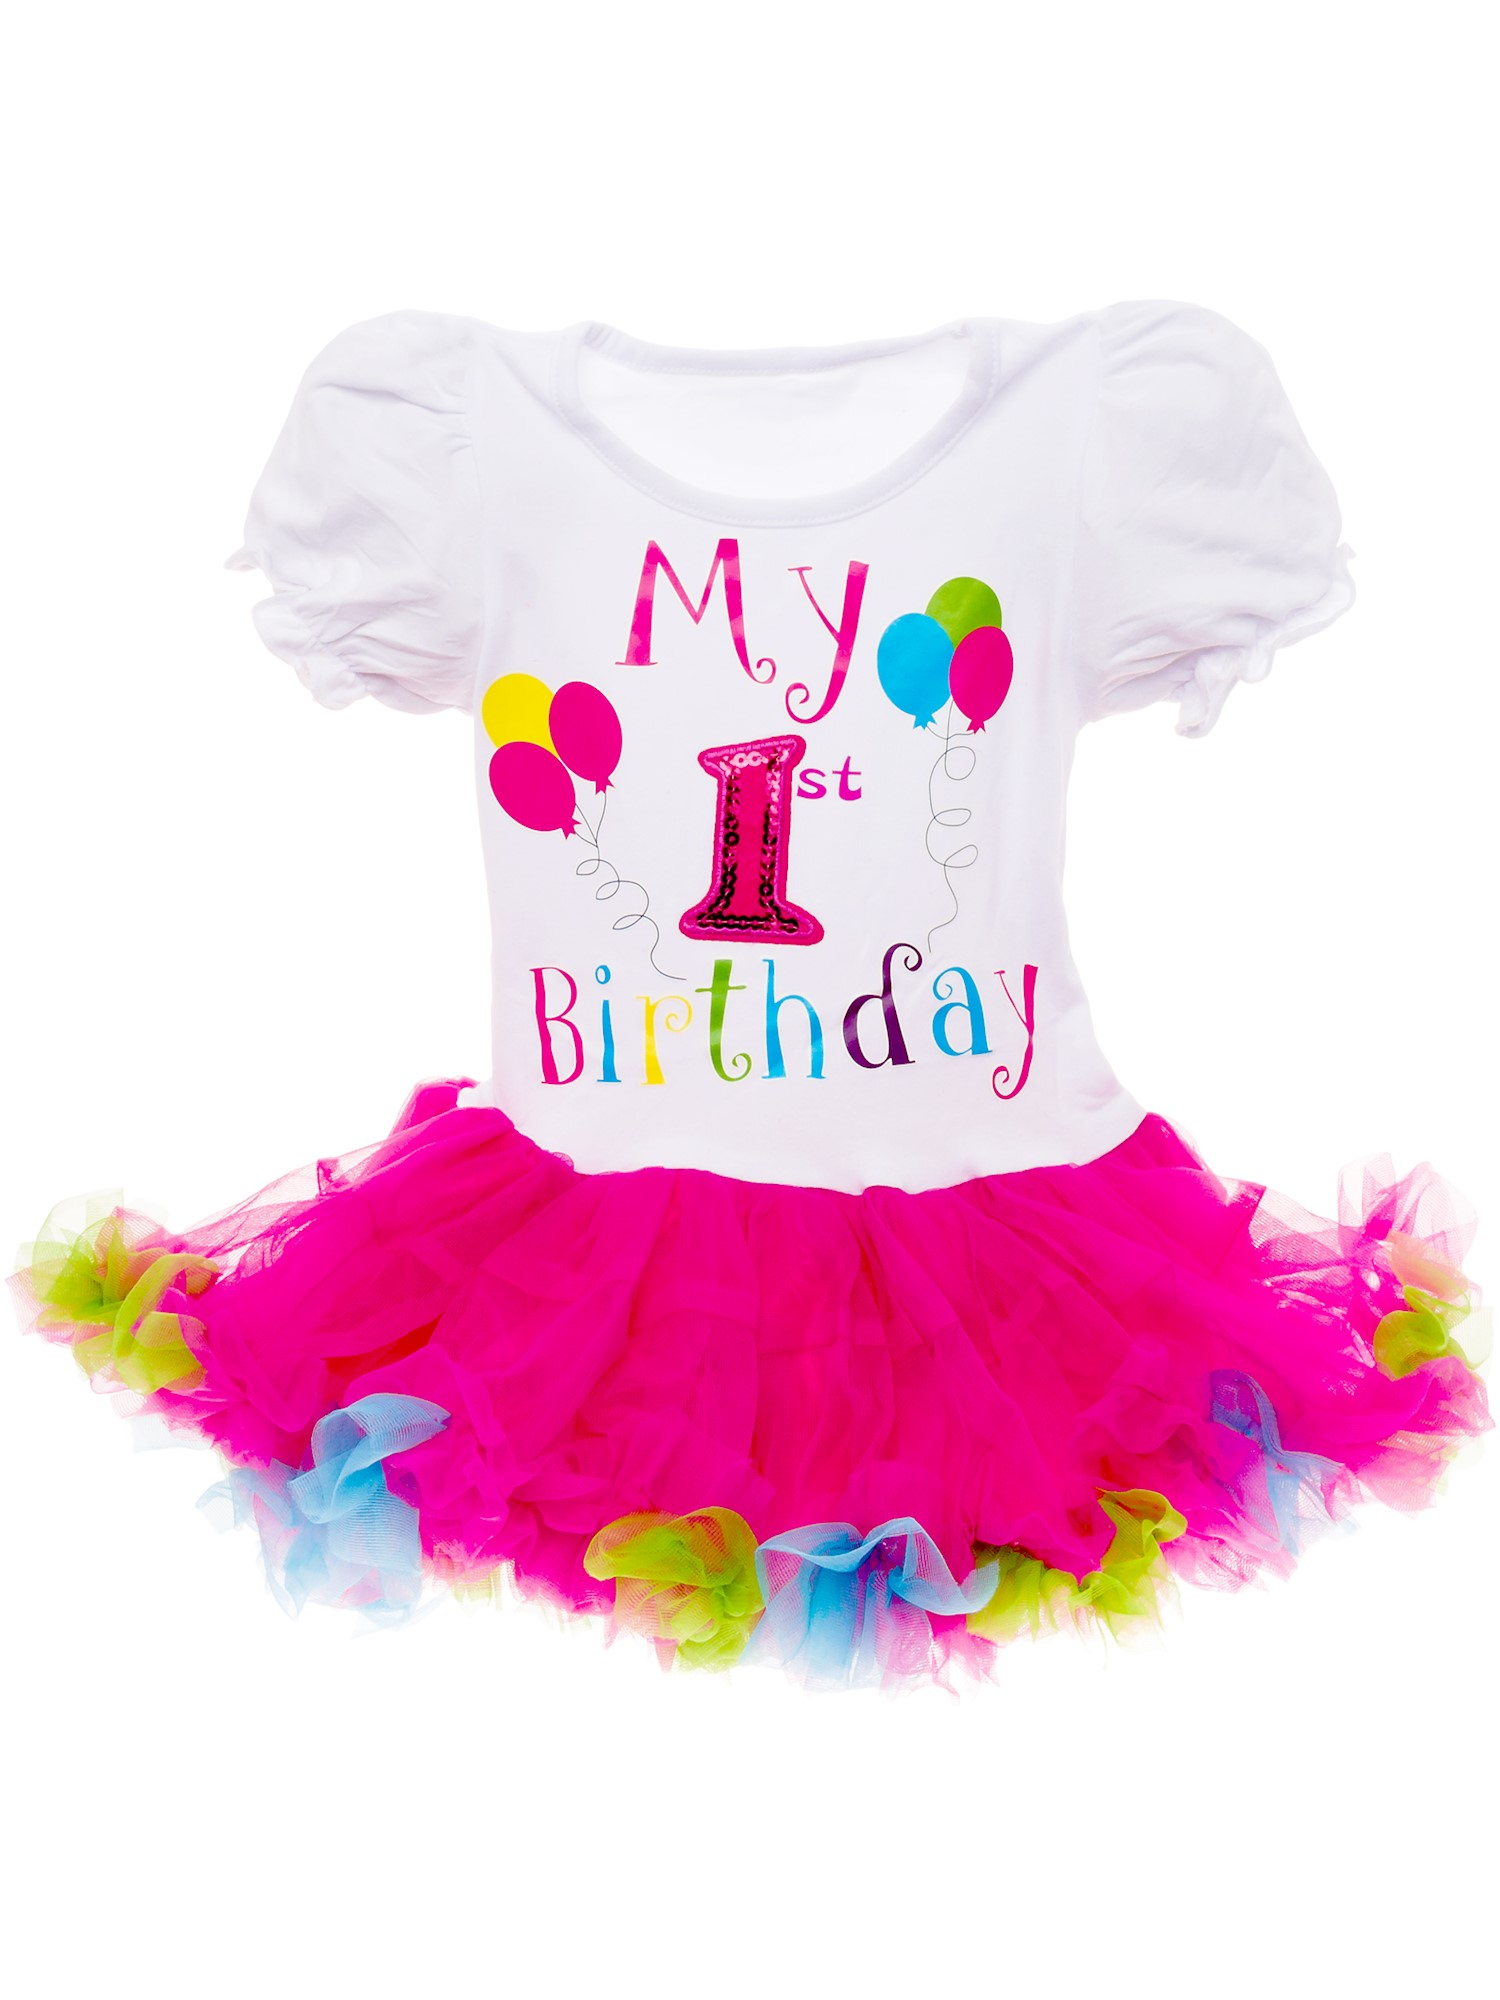 Silver Lilly Baby Girls 'It's My Birthday' Printed Tutu Dress Outfit